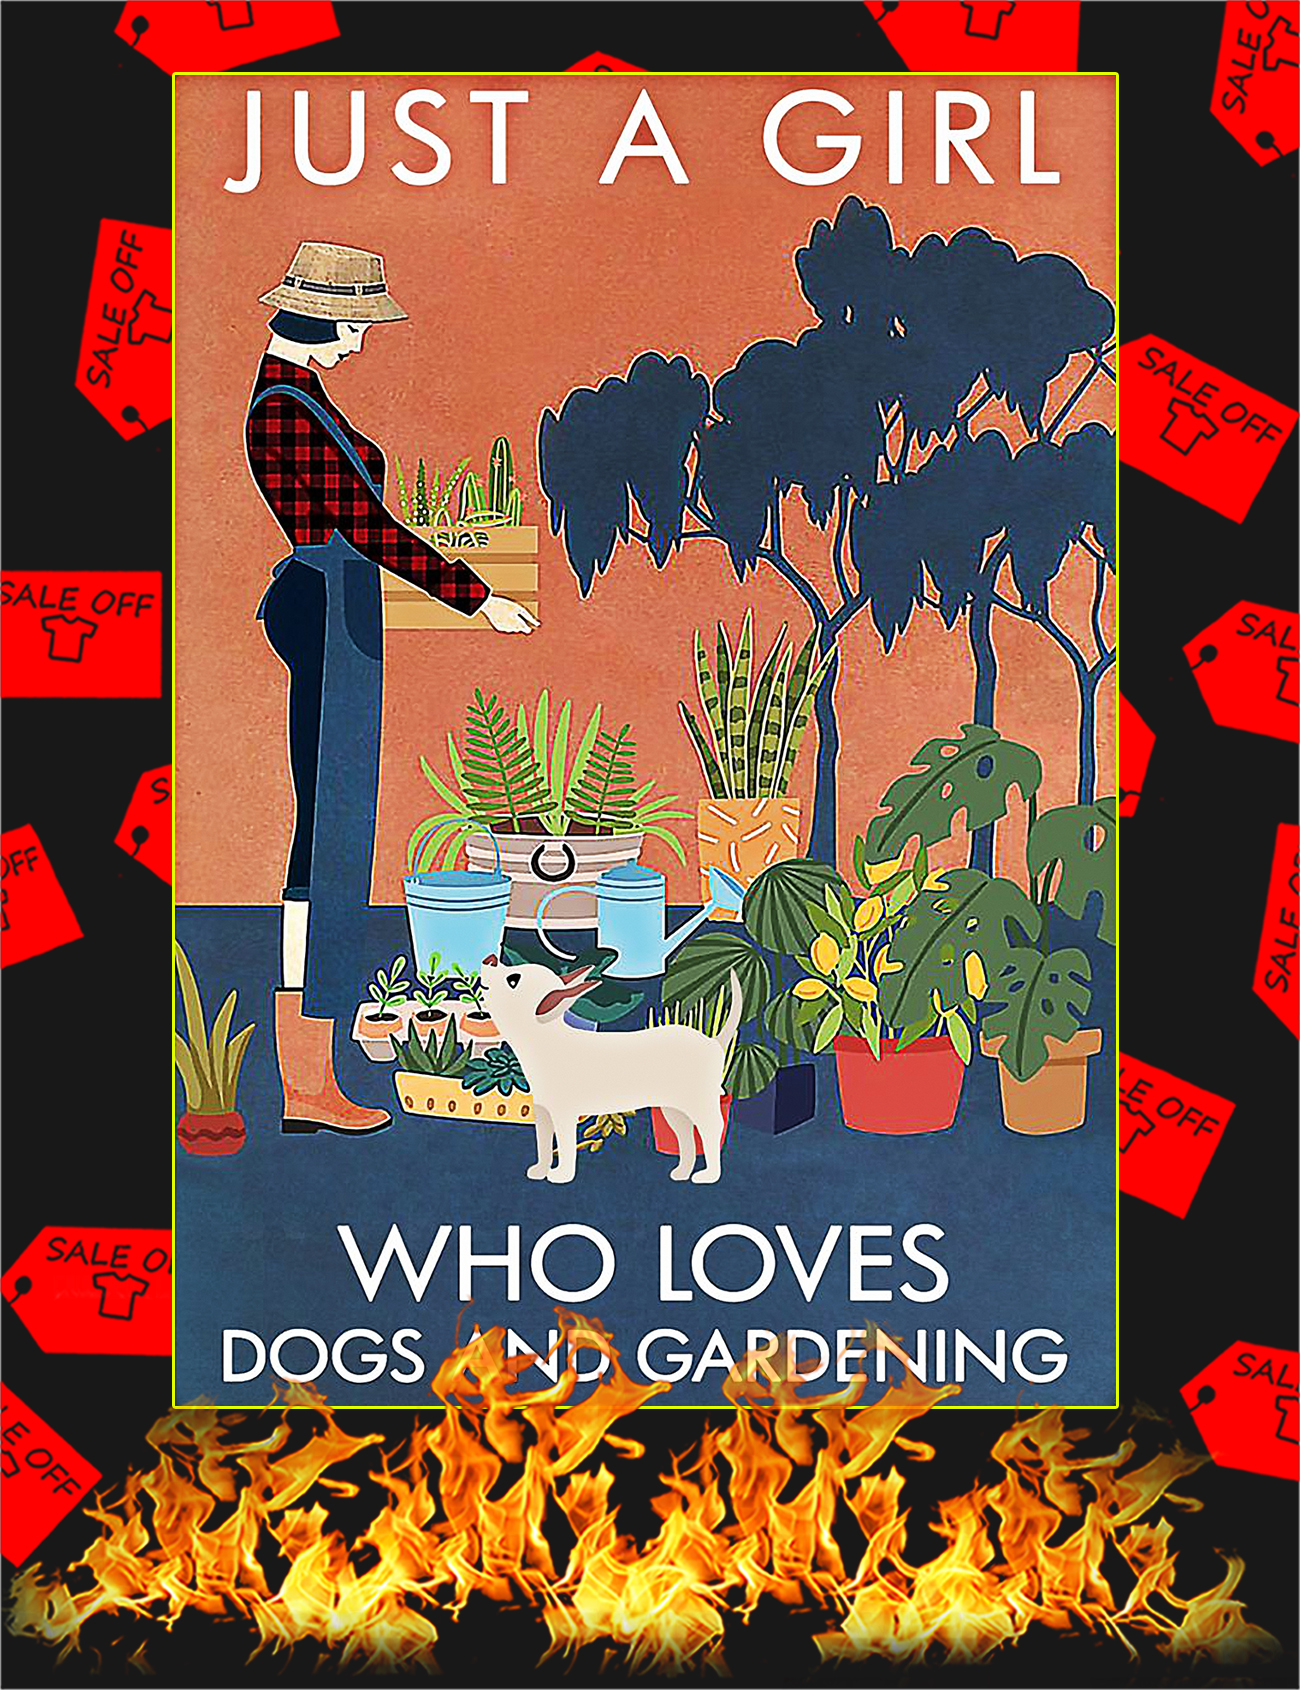 Just a girl who loves dogs and gardening poster - A4